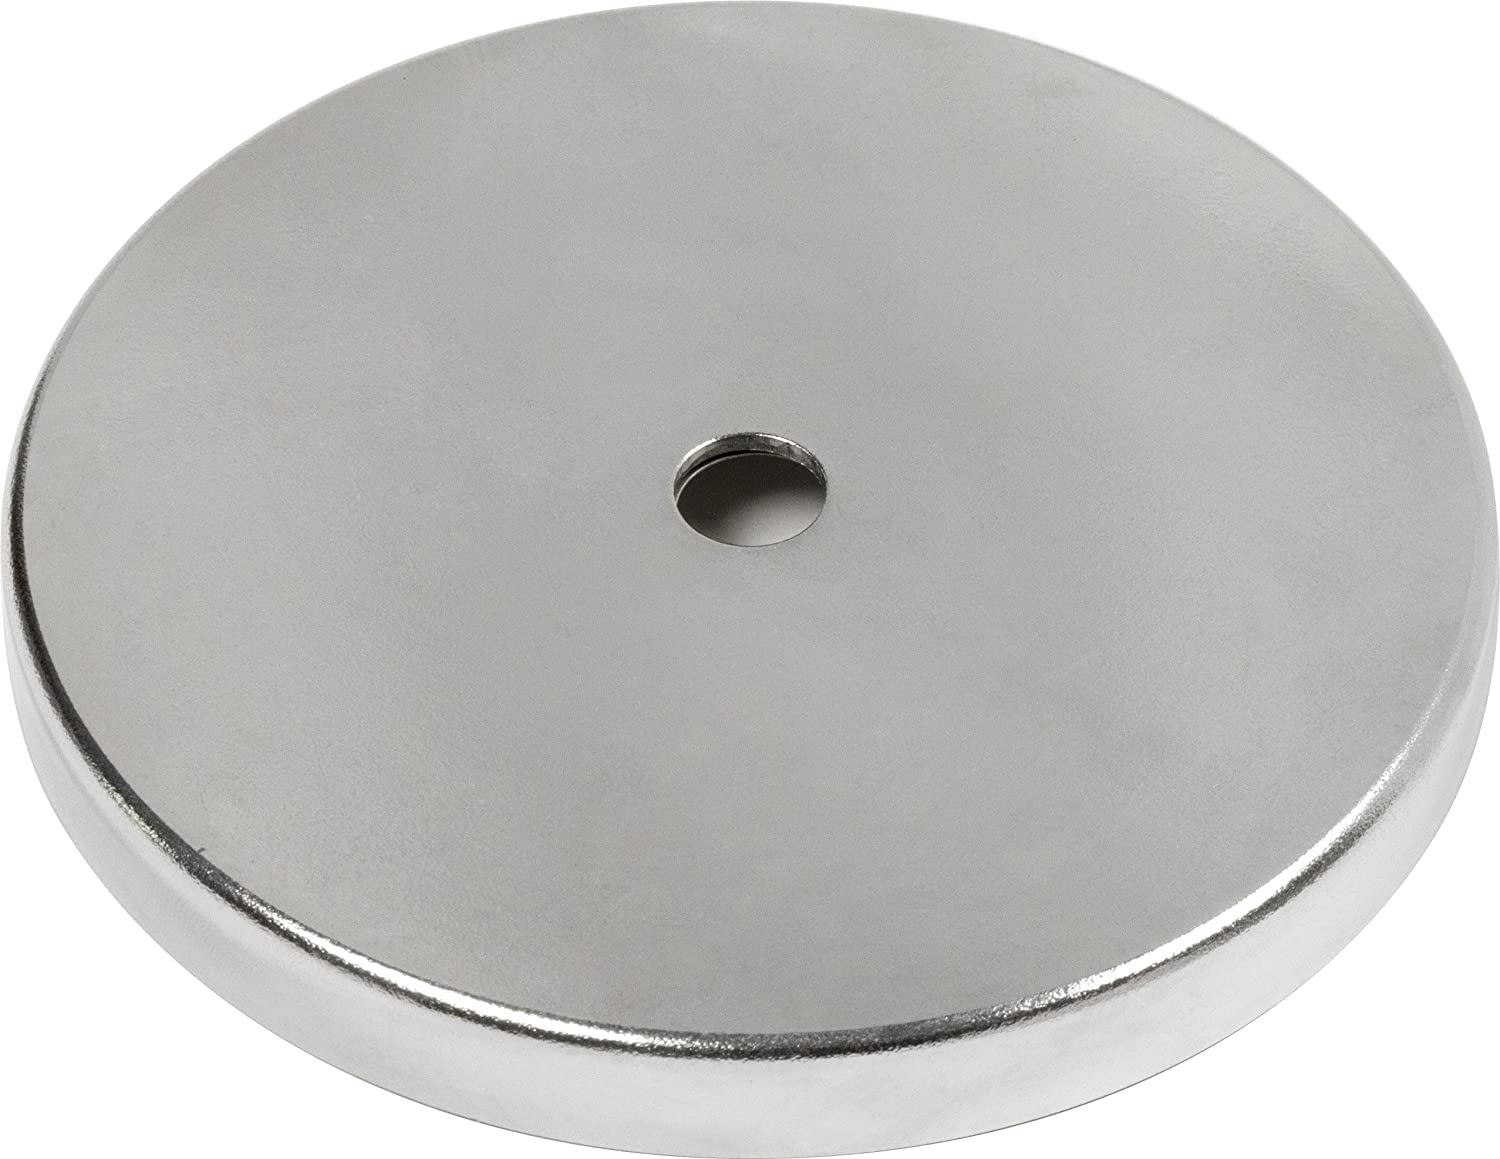 MAG-MATE MX5000 Ceramic Magnet in a Plated Cup, 4.9'/95 lb 4.9/95 lb Industrial Magnetics Inc